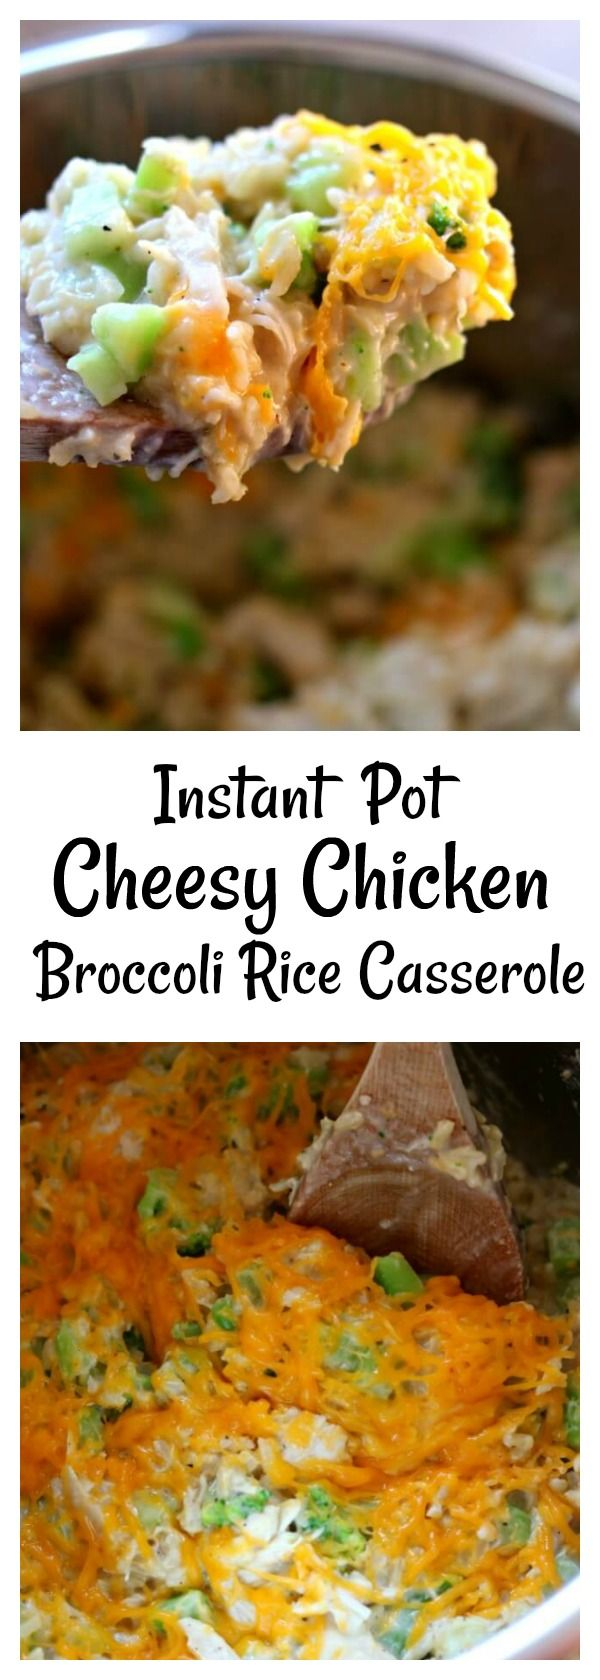 Instant Pot Cheesy Chicken Broccoli Rice Casserole -2354